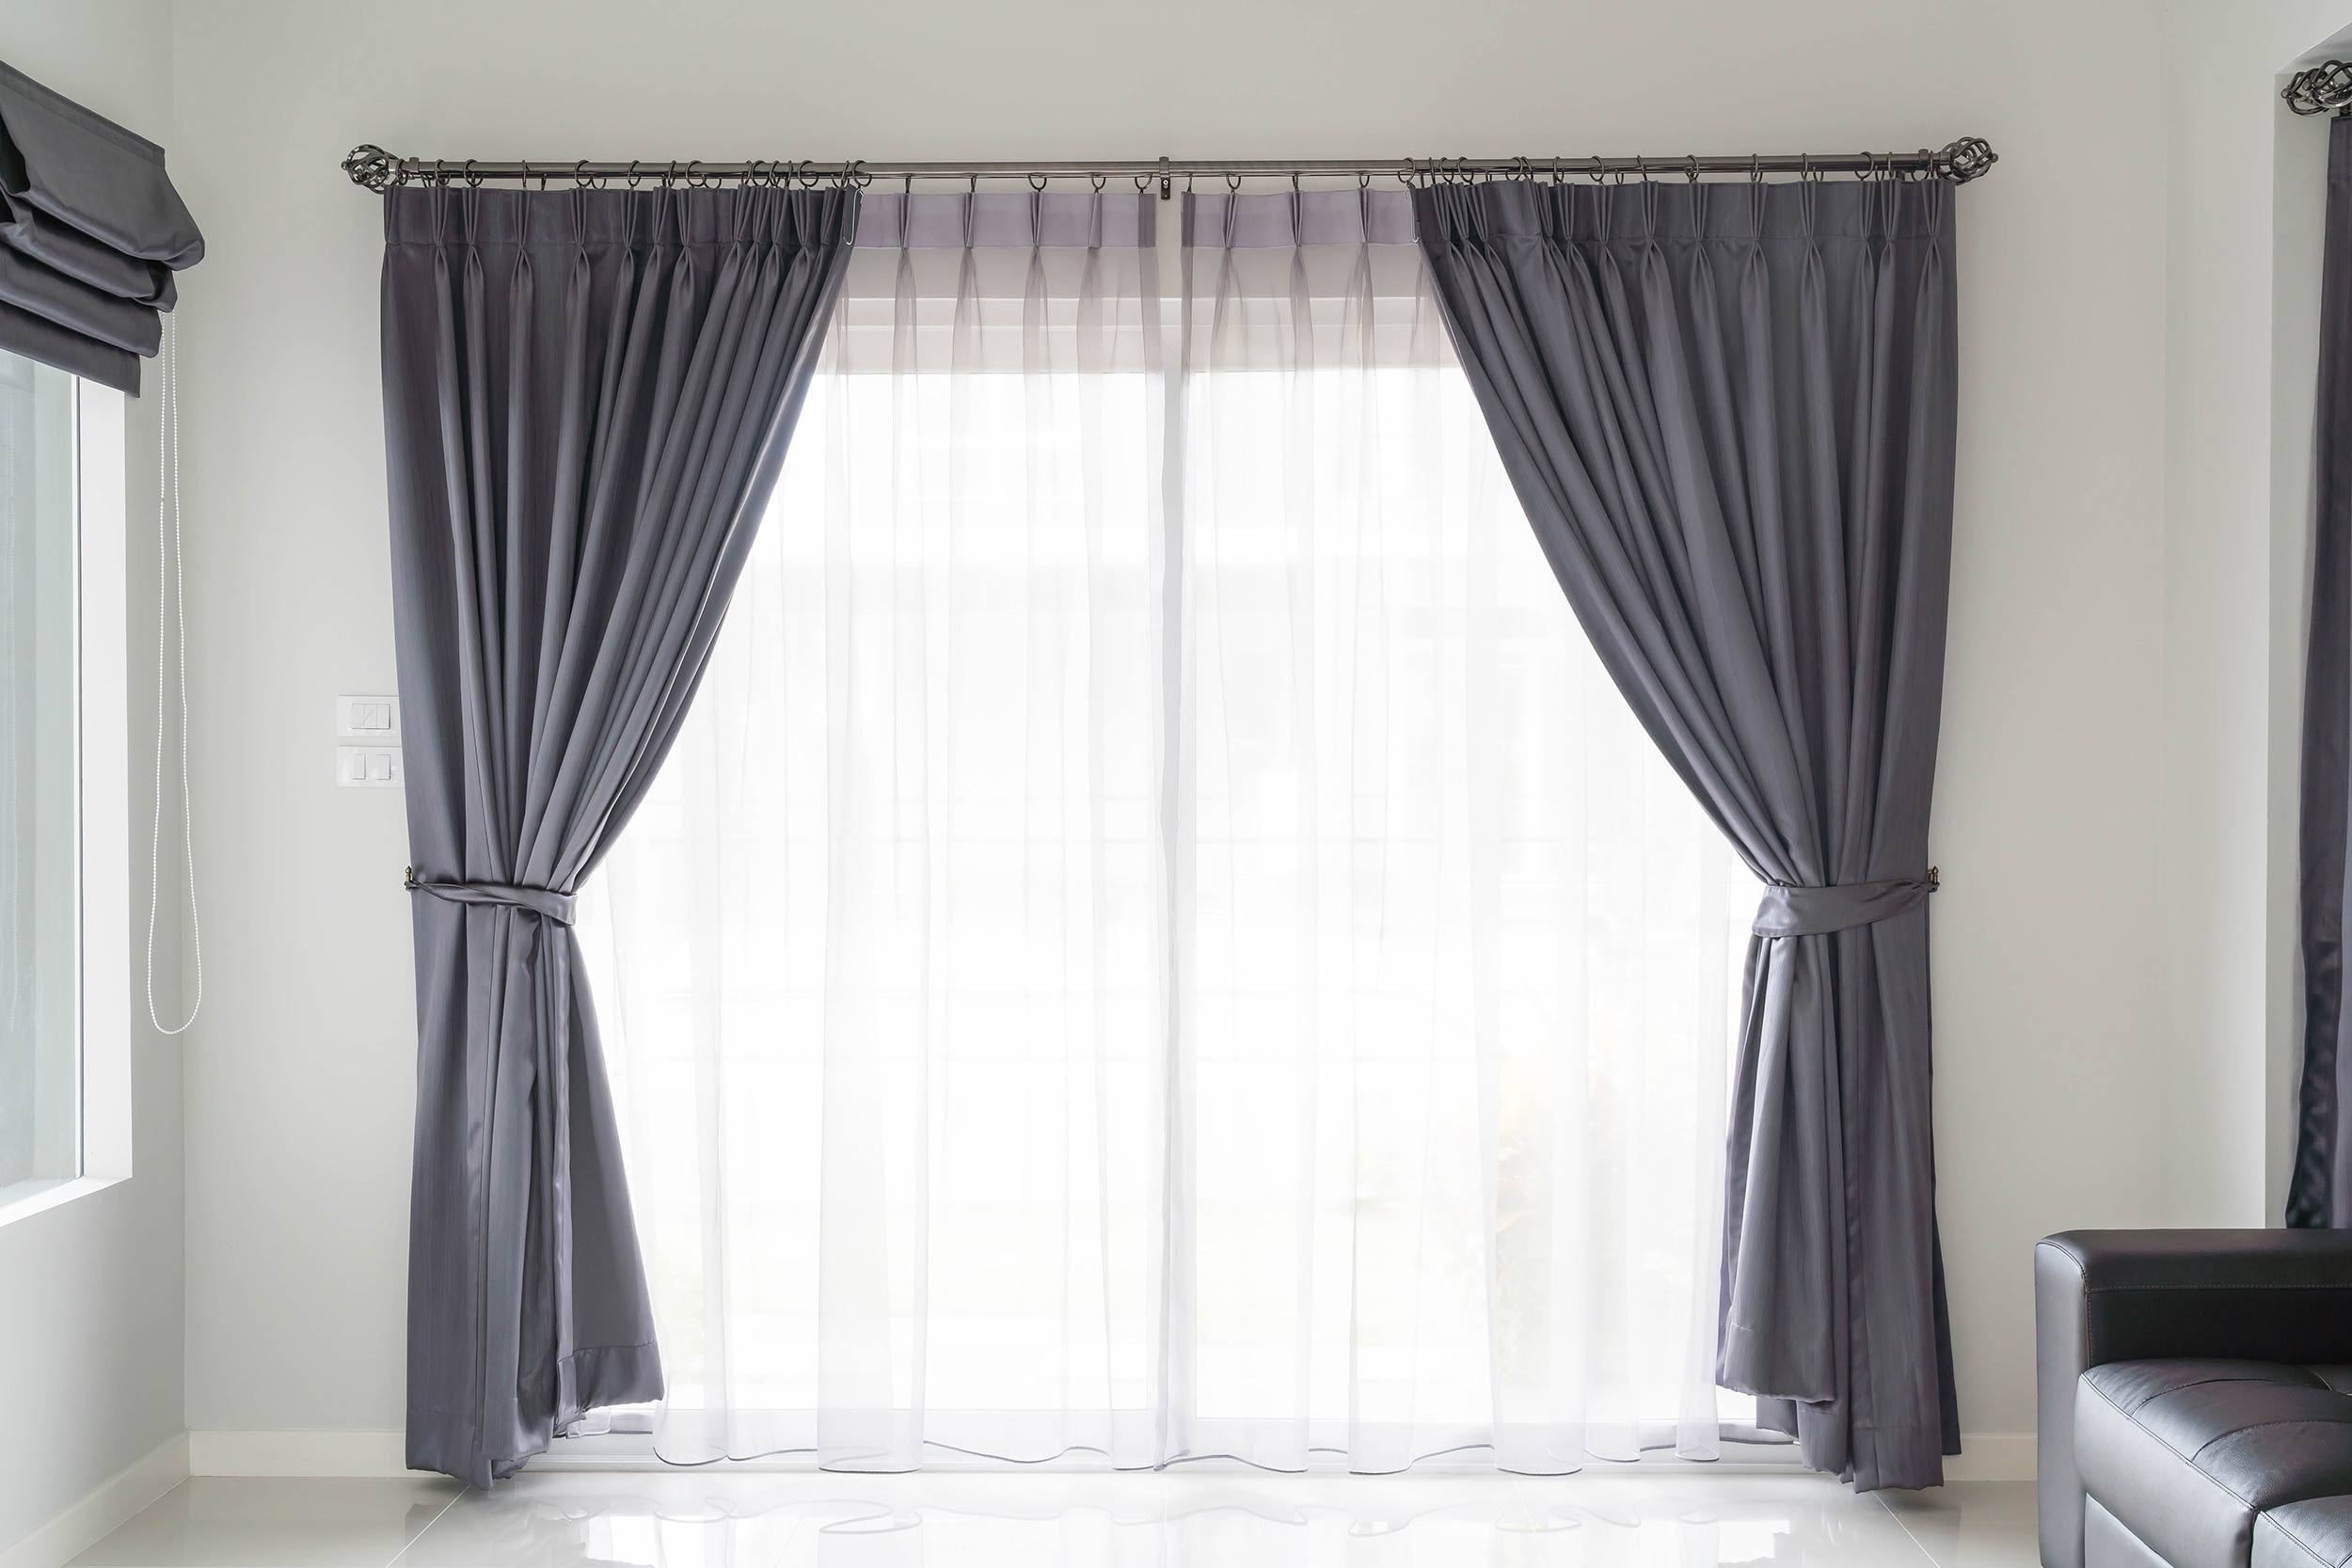 Quote Example Curtains Blinds Quote Template